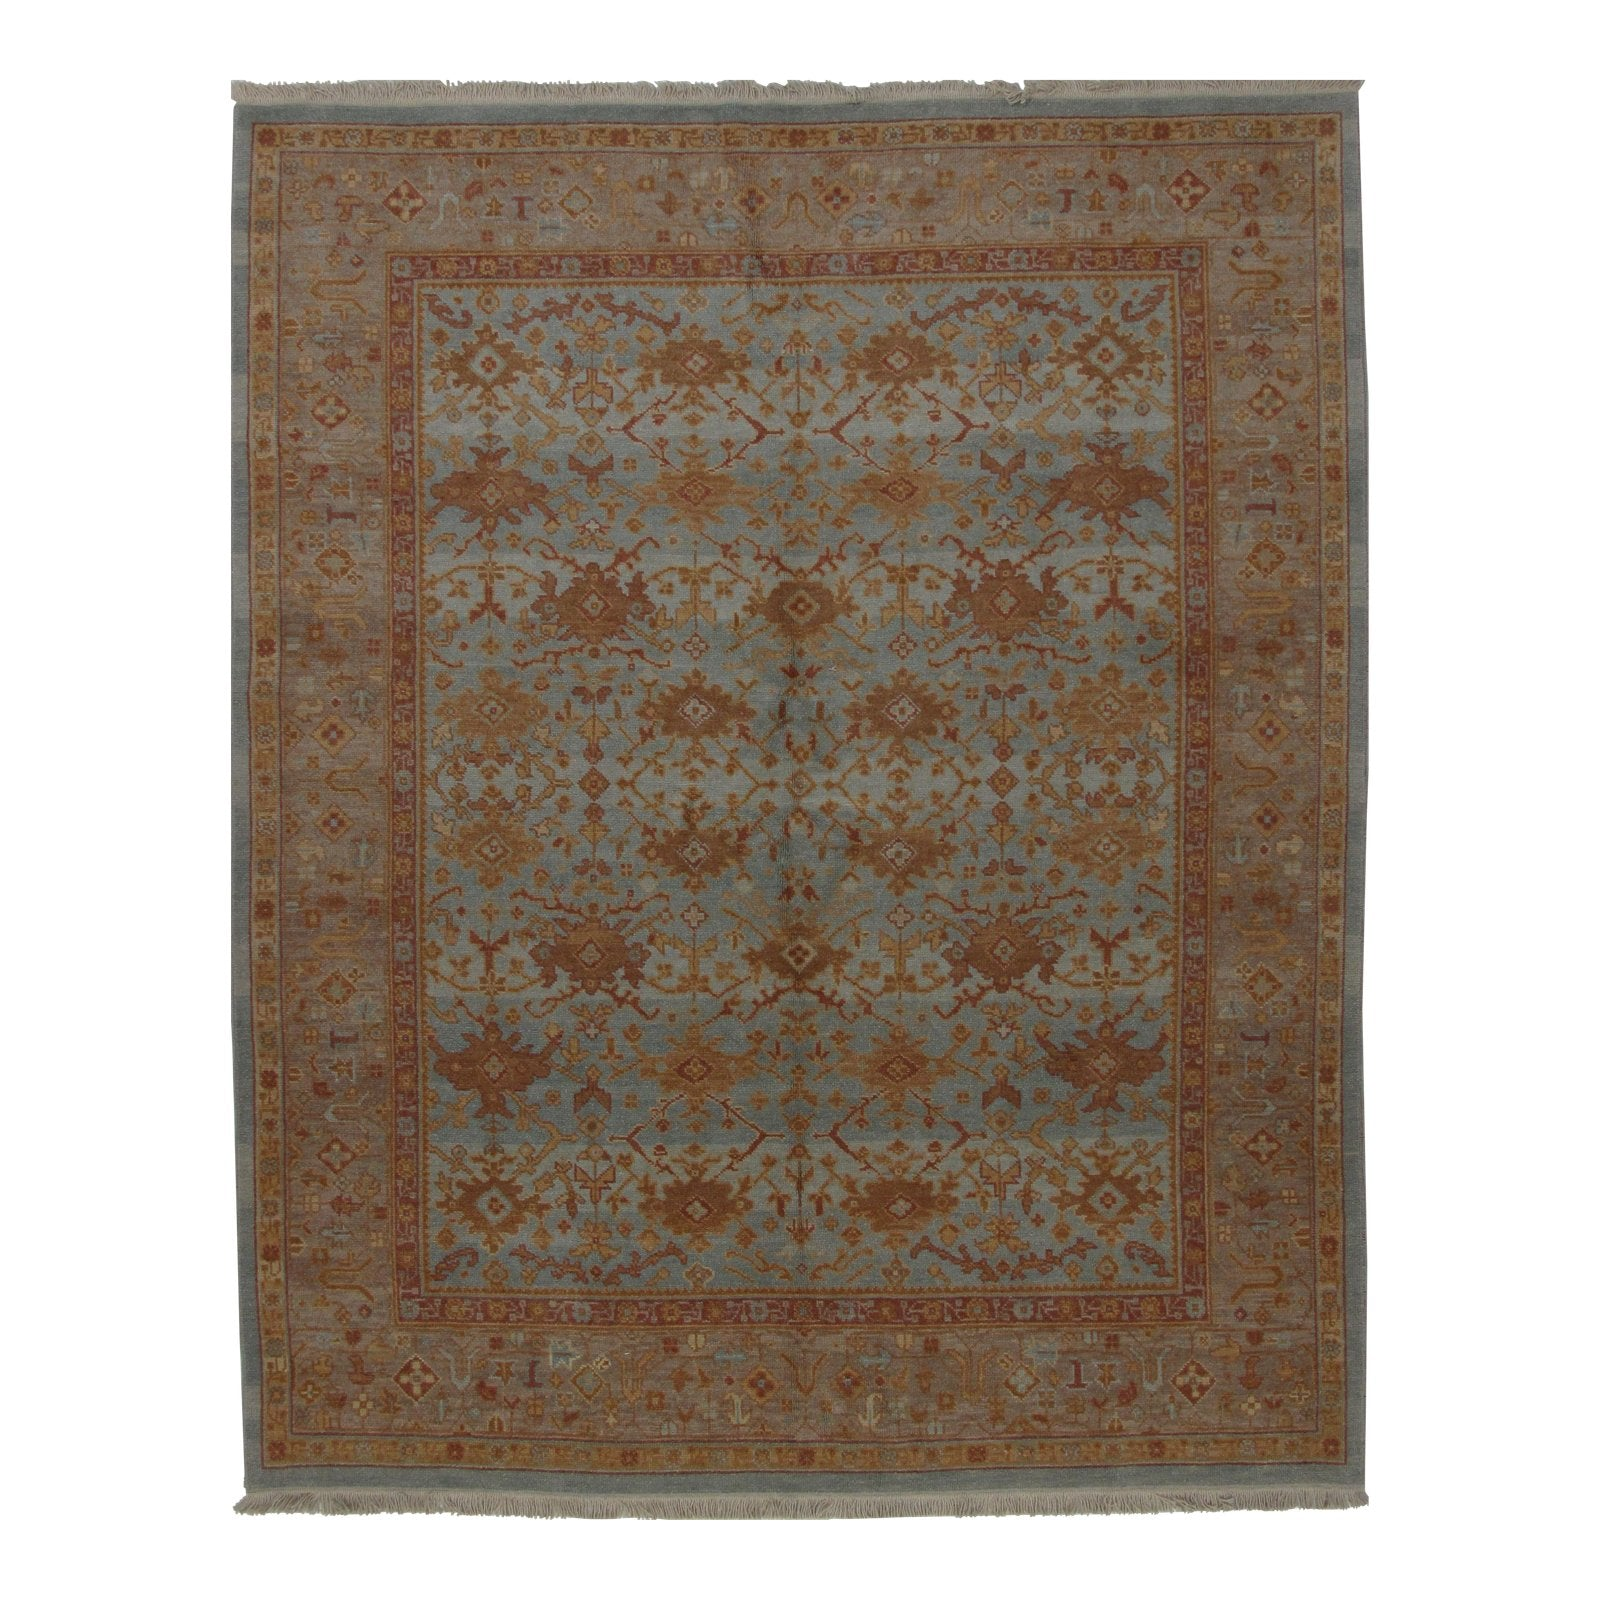 Turkish Oushak Design Hand Woven Wool Rug - 8' X 10'